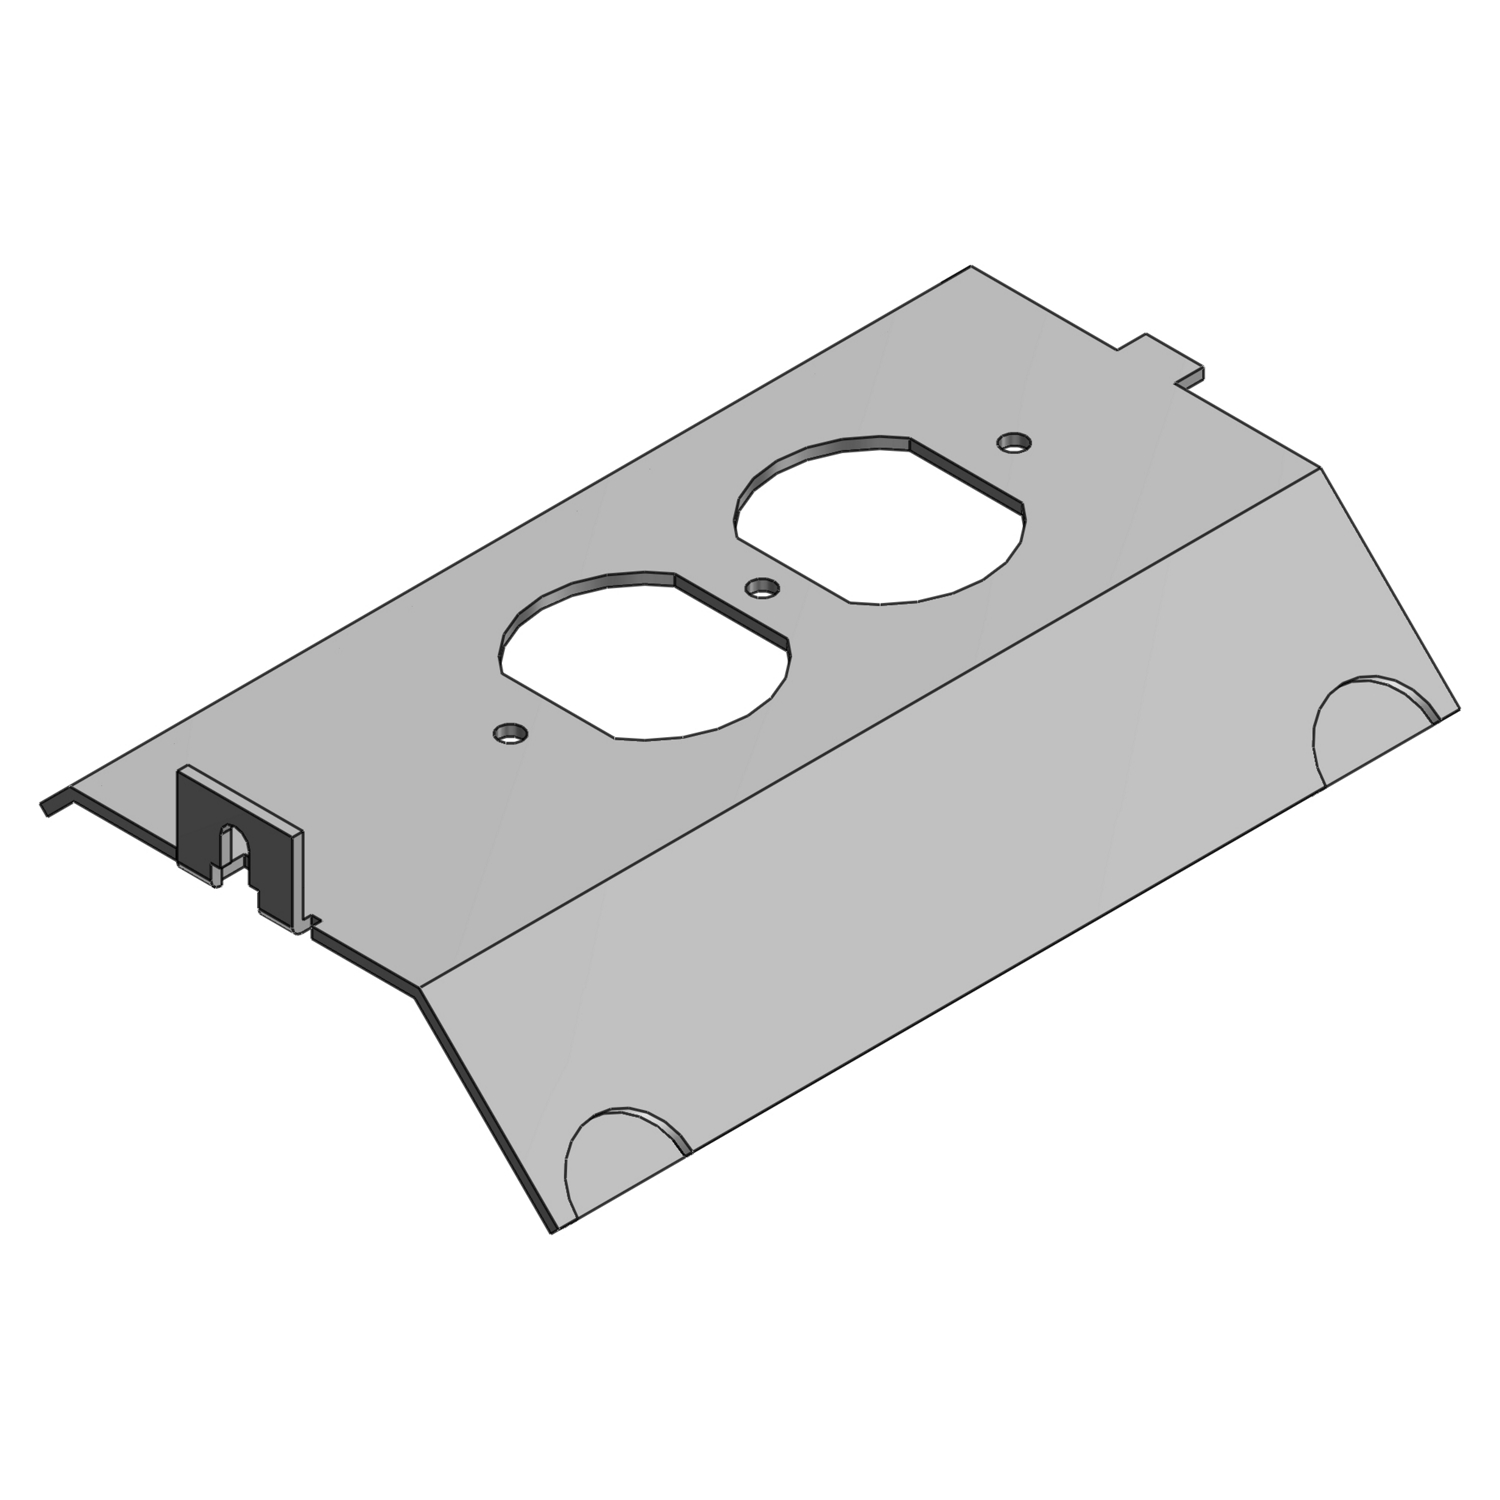 Steel City,AFP-4A,Steel City® AFP-4A Access Floor Module Cover, 5-7/8 in L, For Use With AFM-4 Series Access Floor Module, Steel